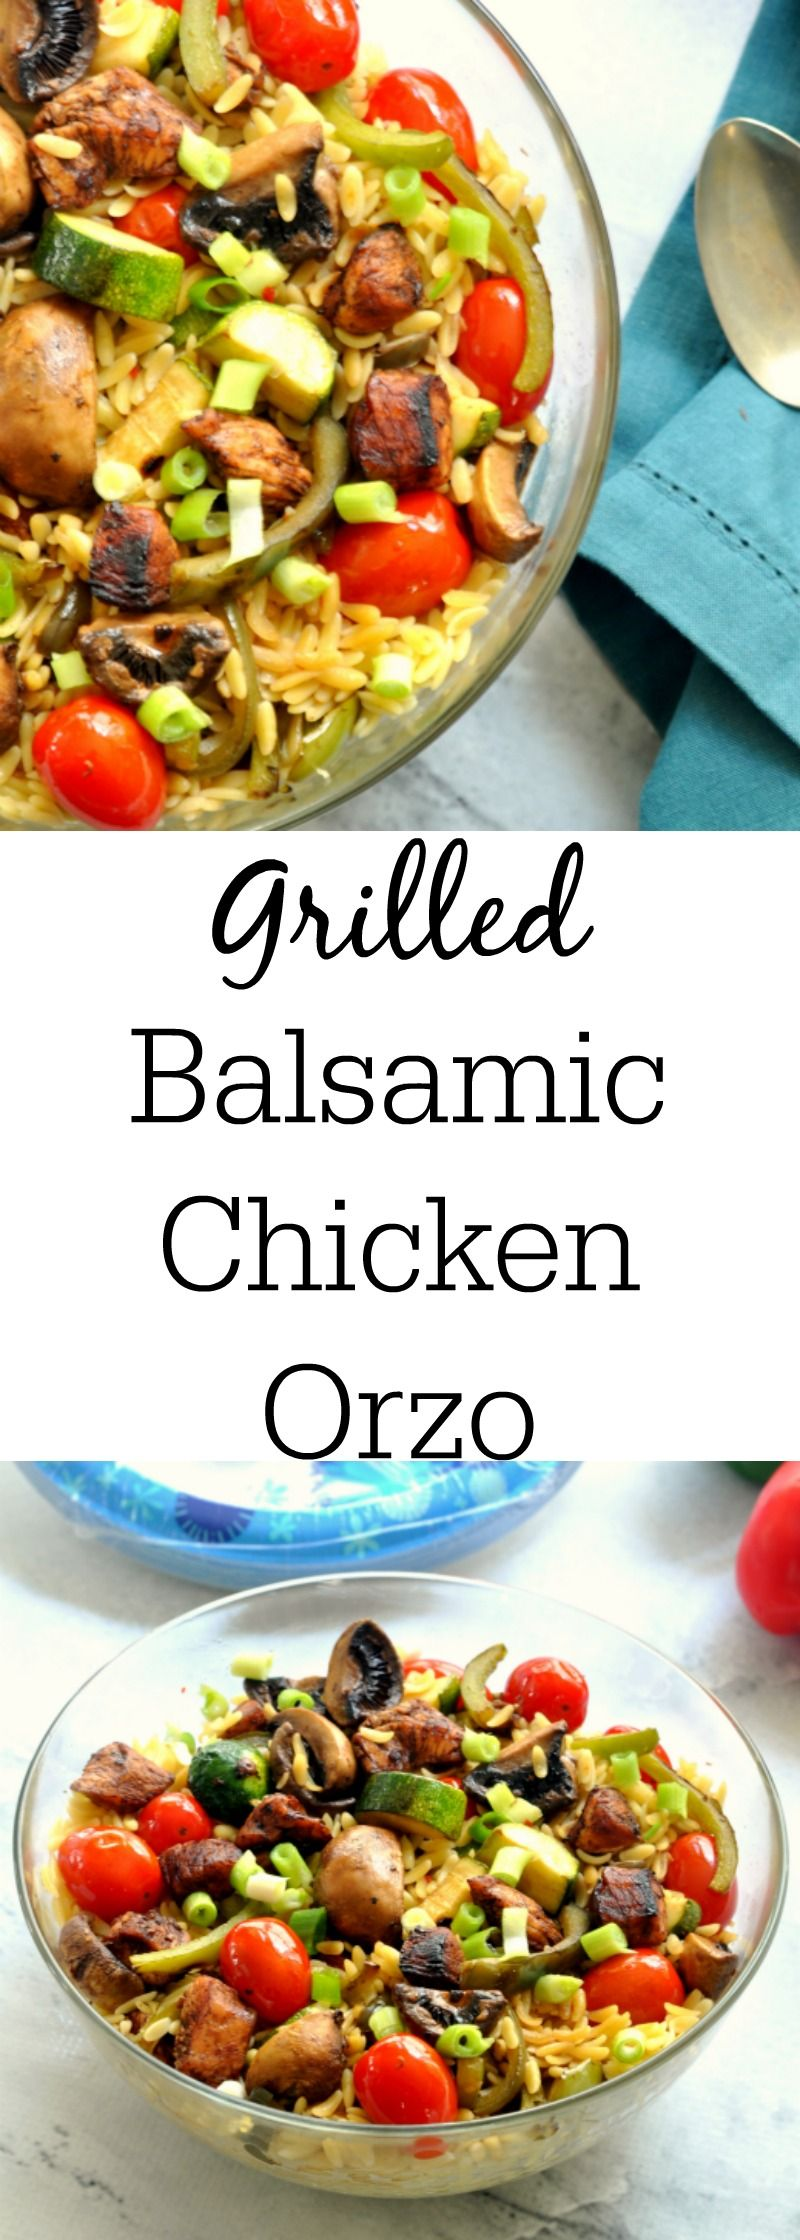 Grilled Balsamic Chicken and Vegetable Orzo is the perfect recipe to feed a crowd. The balsamic vinegar is a great pairing with the grilled meat and veggies